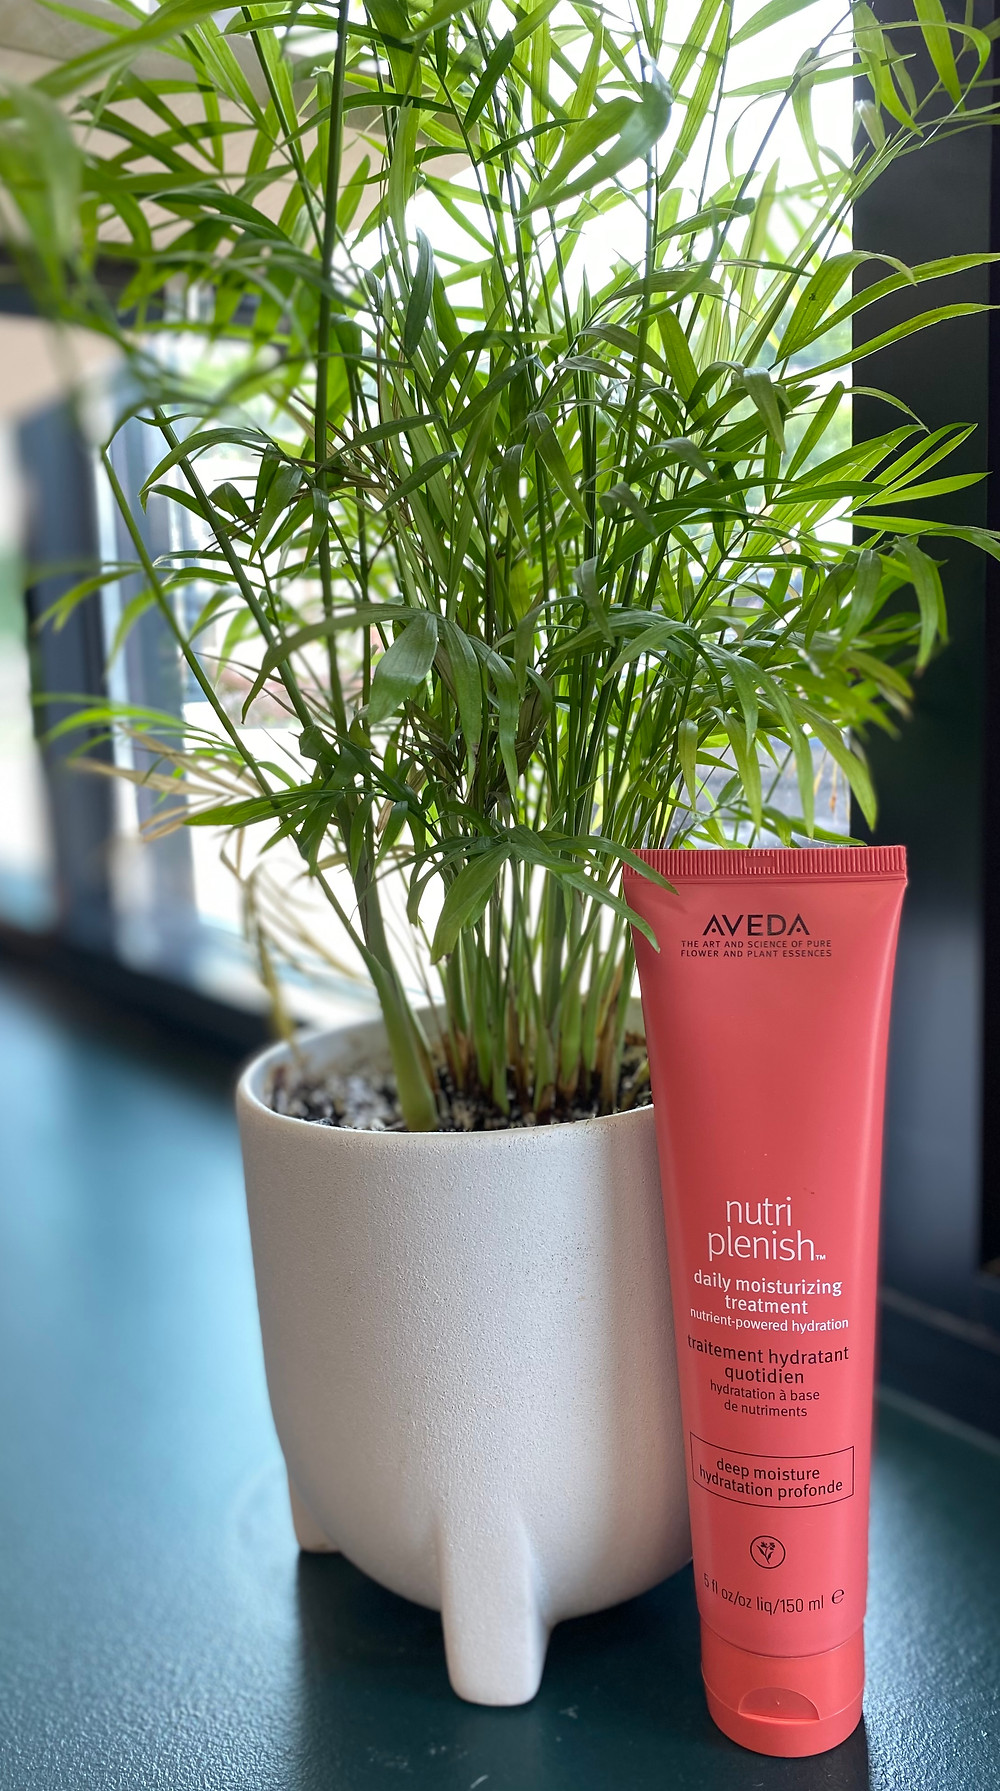 Aveda's Nutriplenish Daily Moisturizing Leave-in Treatment next to a plant in a white planter